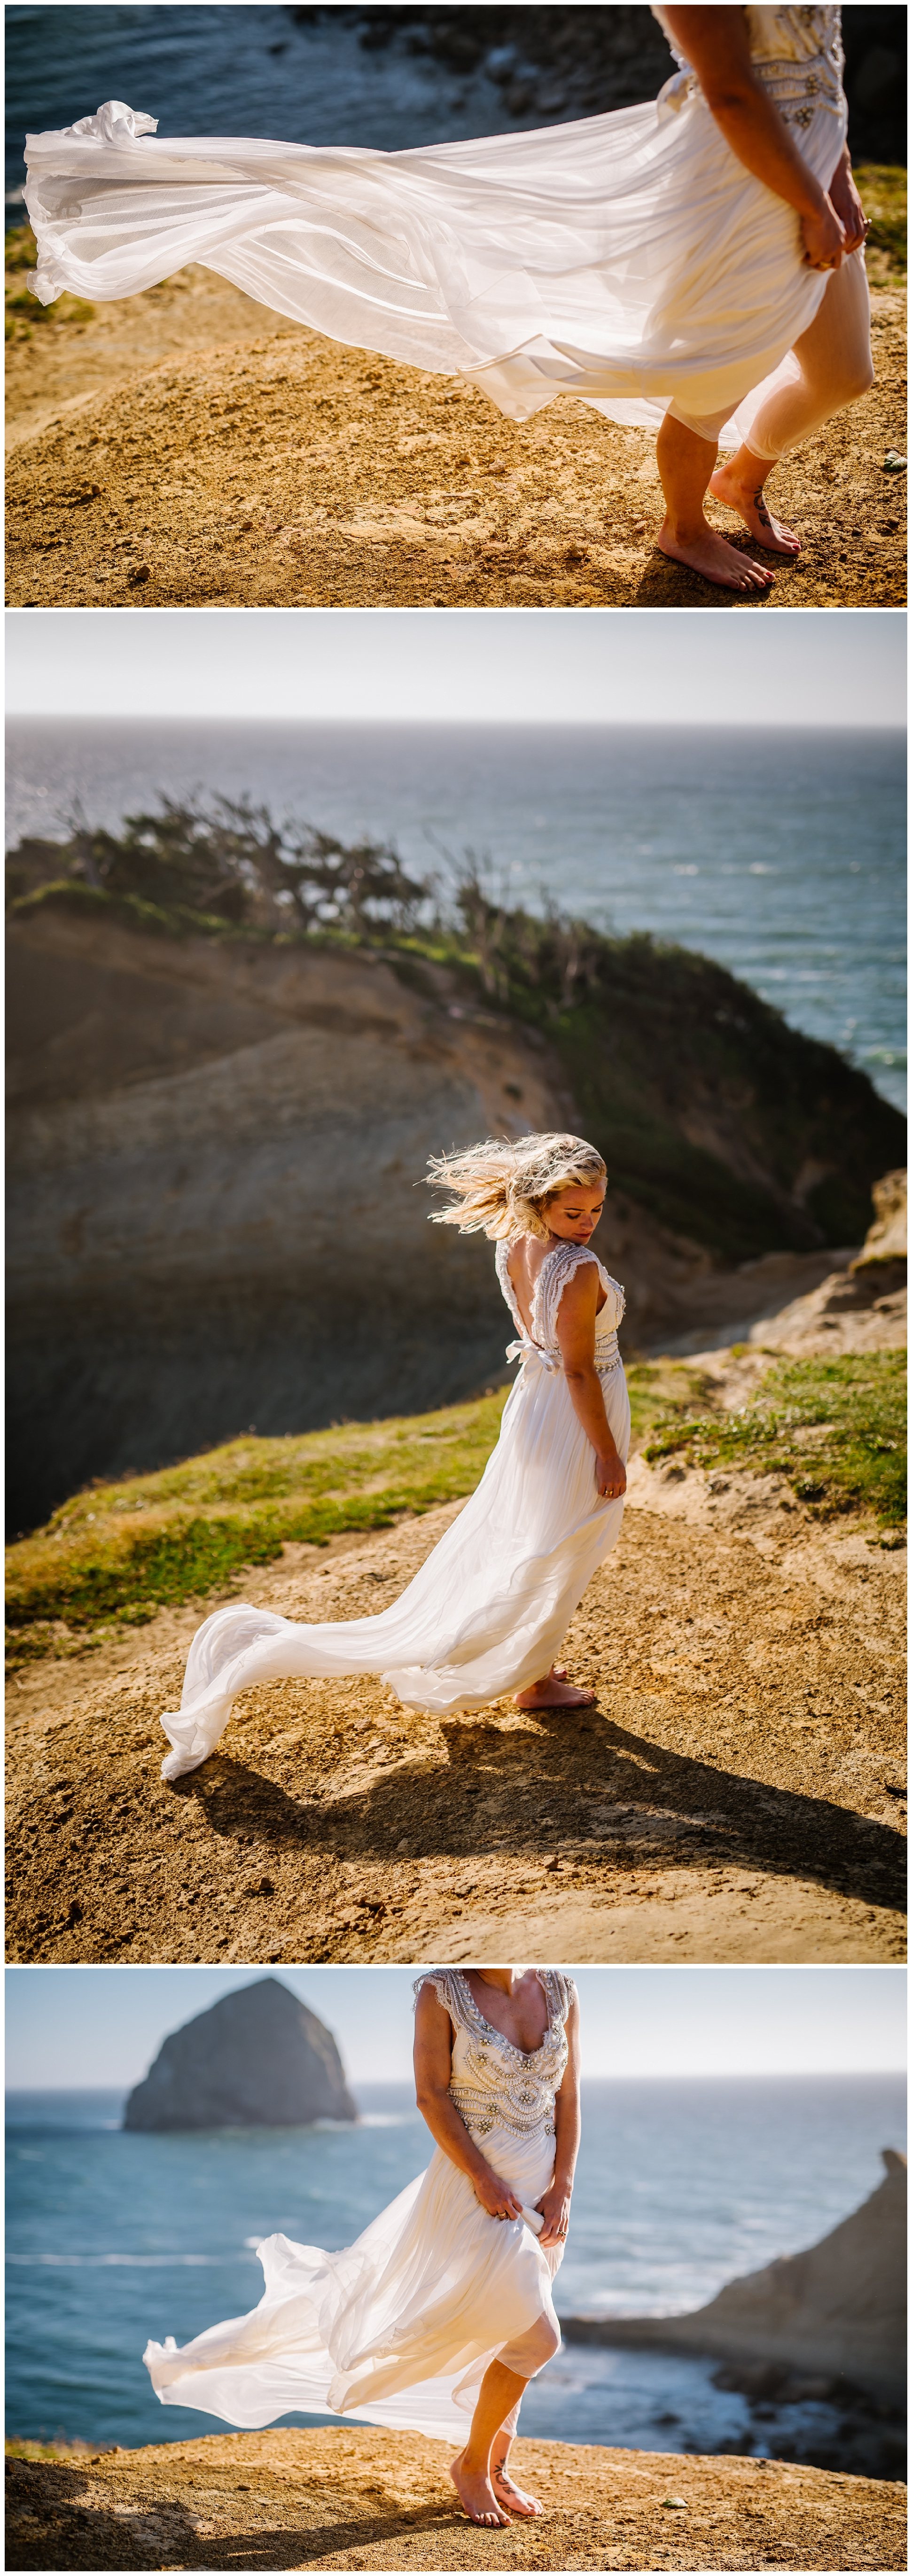 Cape-kiwanda-bridal-portrait-destination-wedding-photographer_0014.jpg